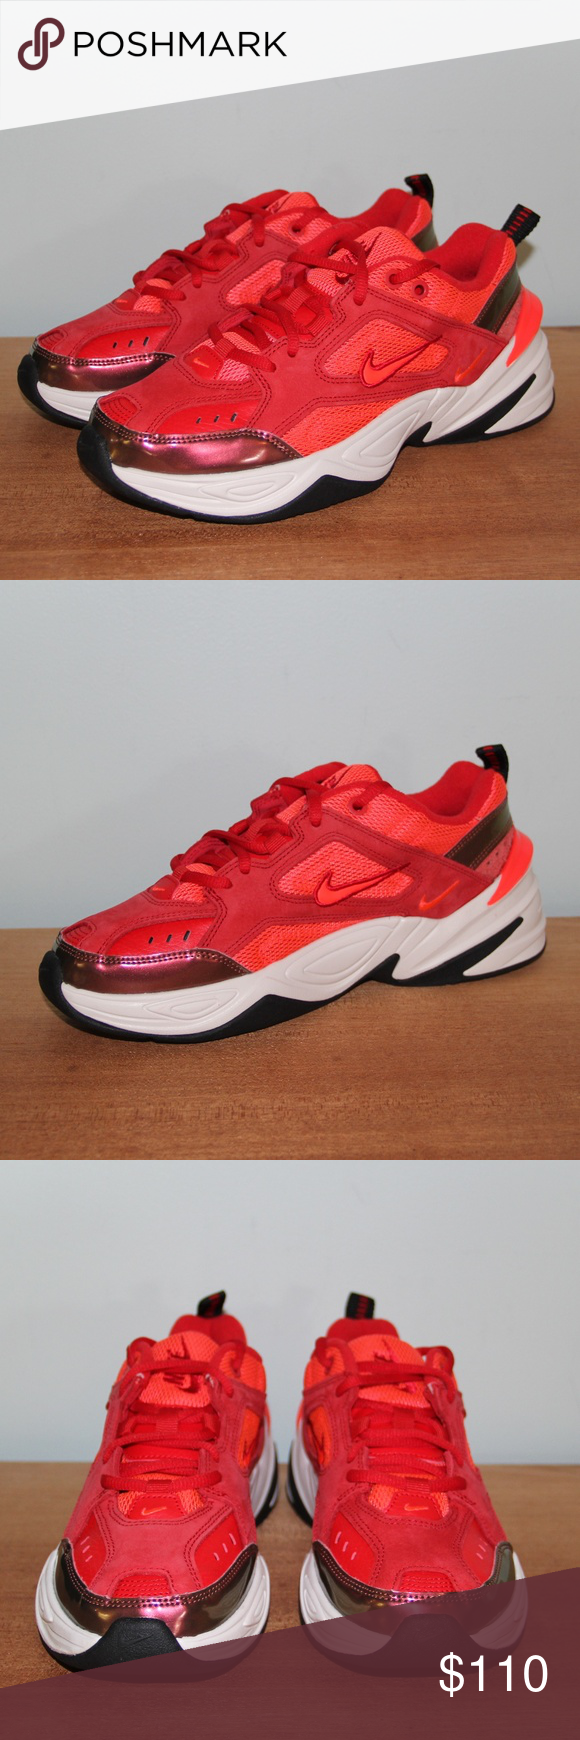 New Nike M2k Tekno Mesh Red Suede Women S Shoes New Without Box Women S Size 7 5 11 Available University Red Phanton Br Suede Shoes Women Red Suede New Nike